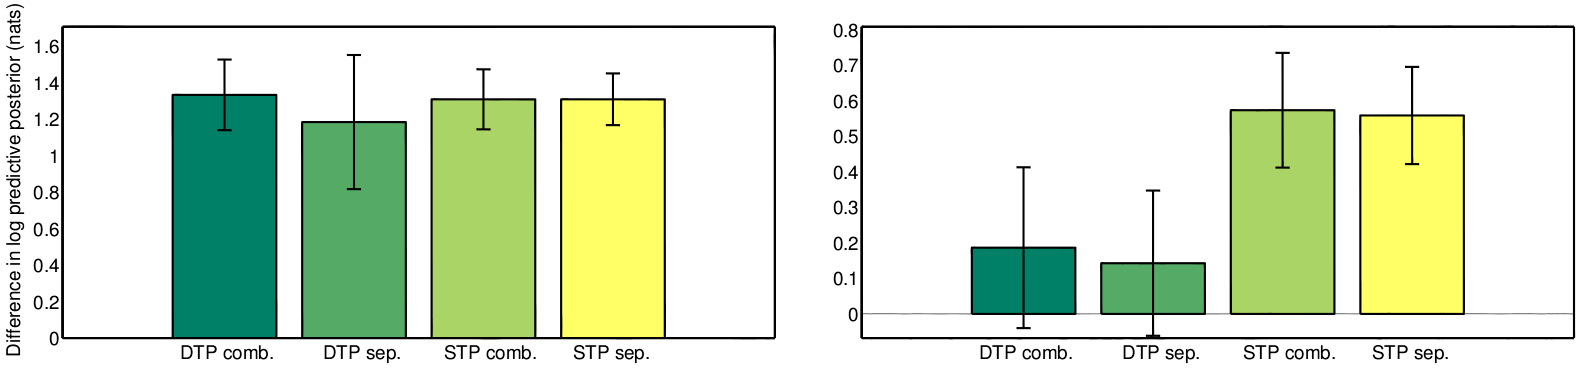 Figure 4: The difference between four versions of NIGP and a standard GP model on a pendulum prediction task. DTP stands for deterministic test point and STP is stochastic test point. Comb. and sep.